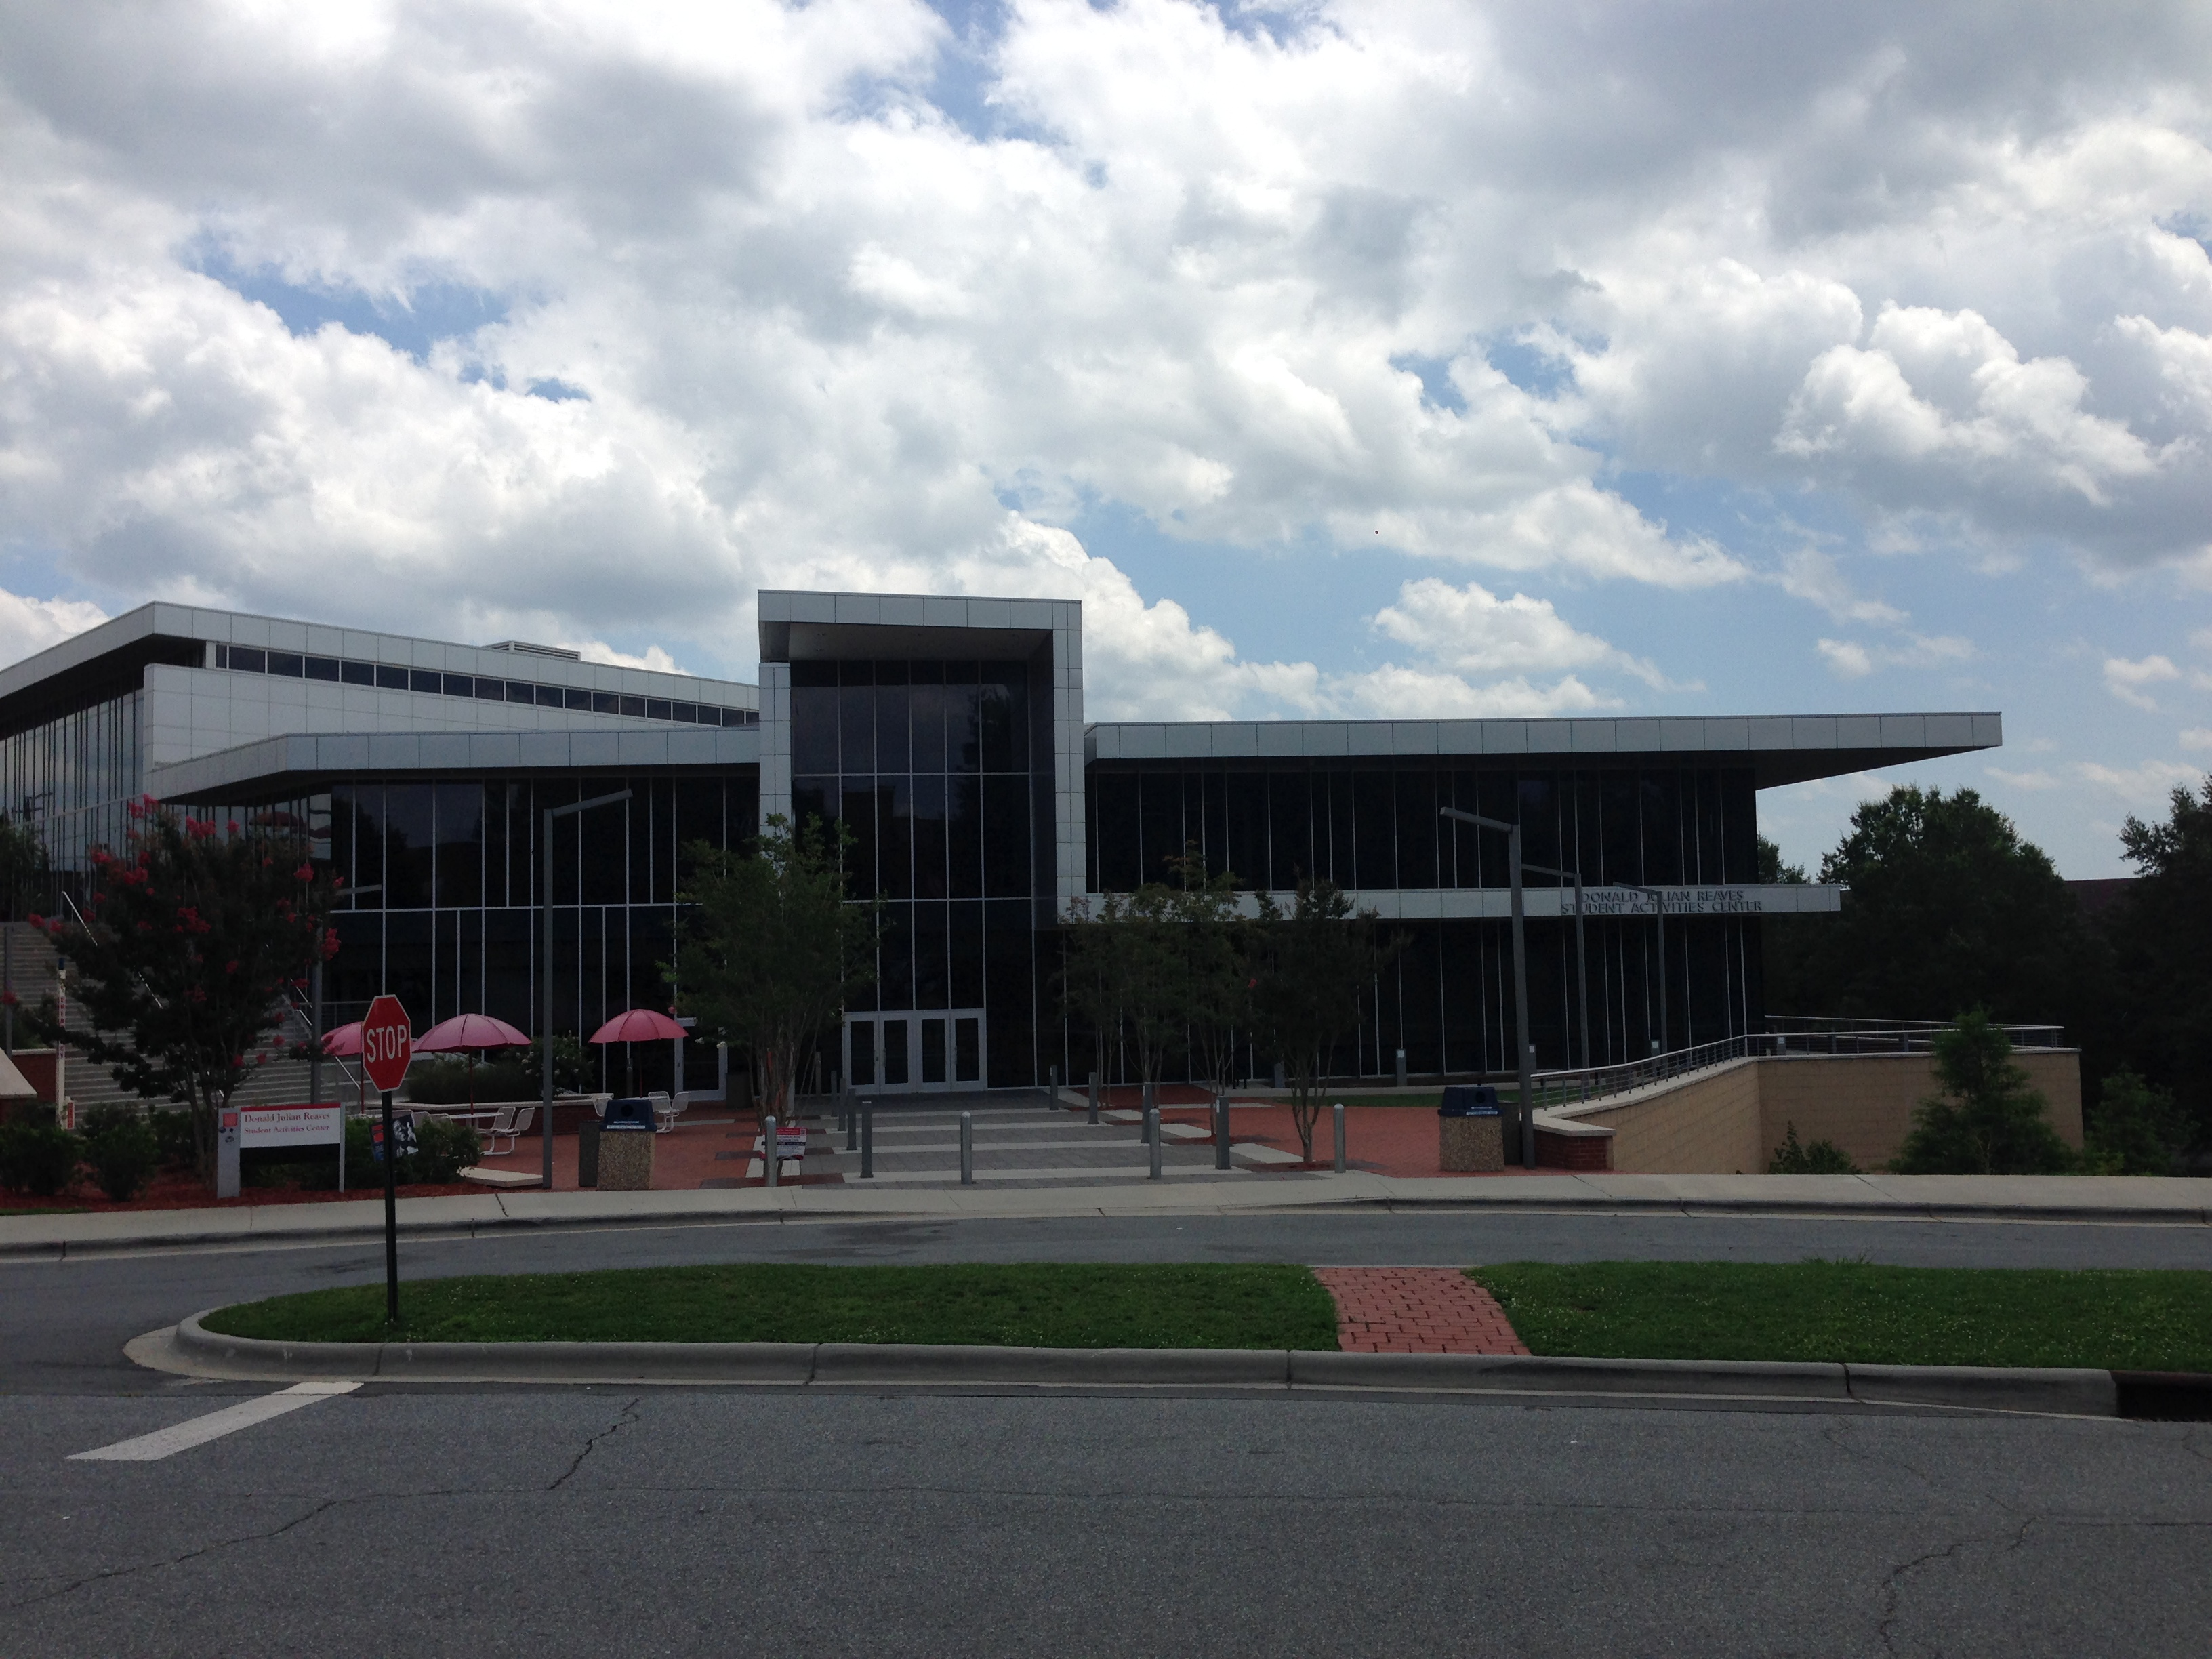 D.J. Reaves Student Activities Center